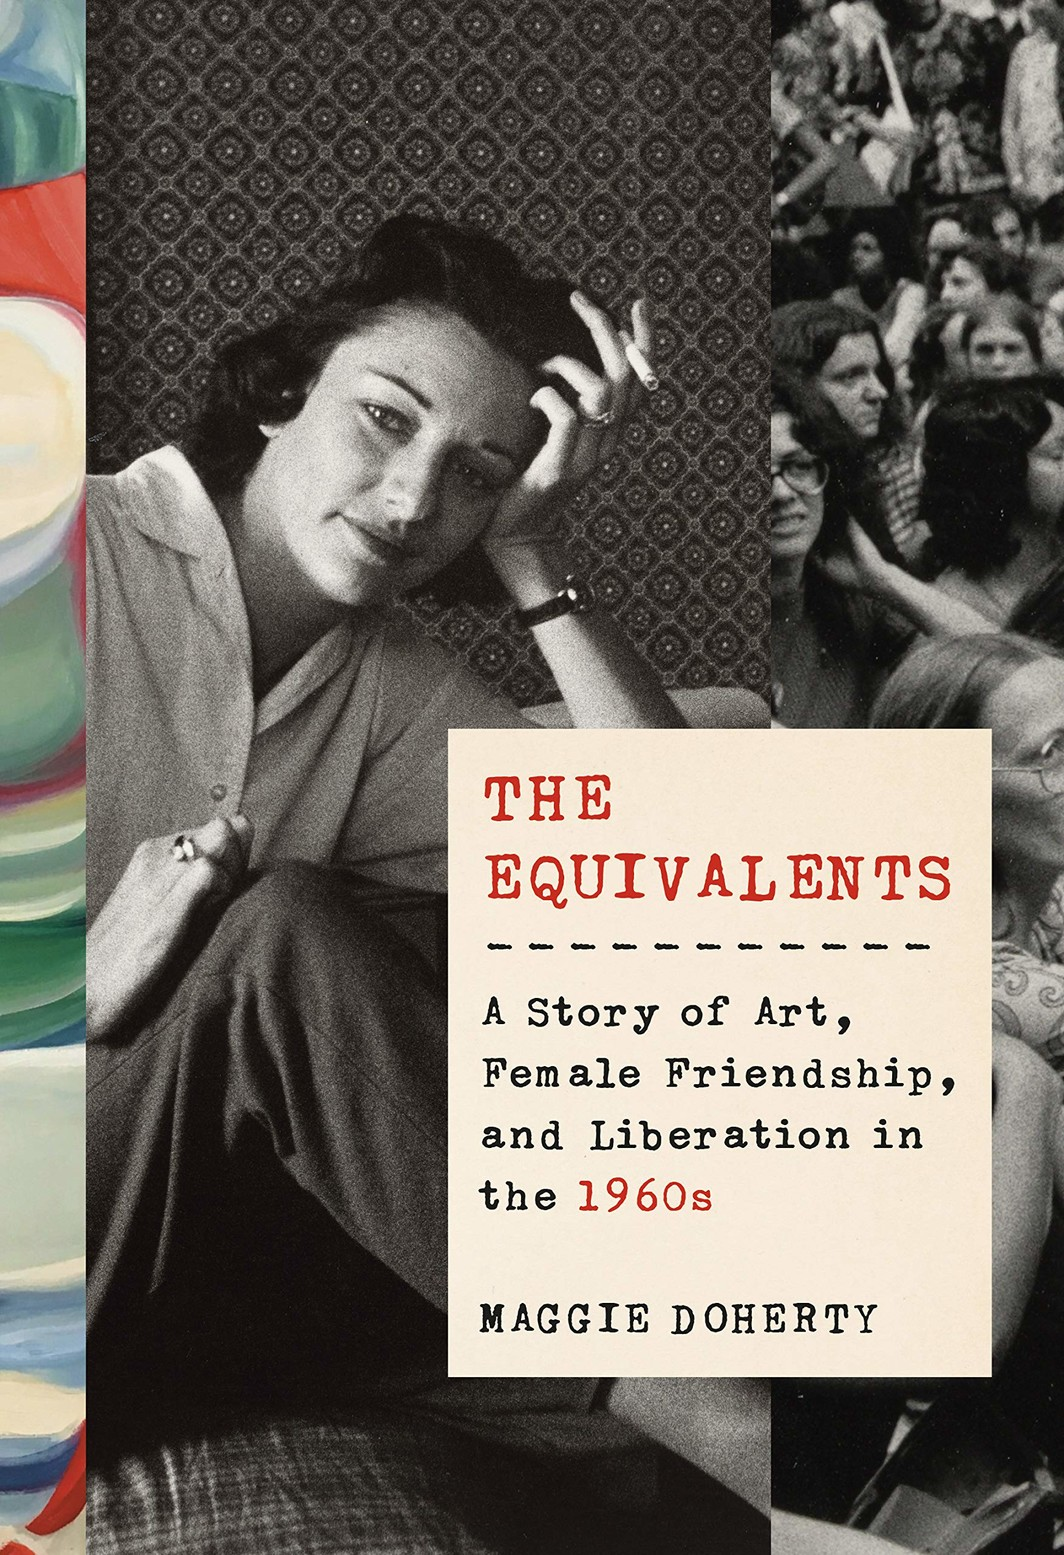 The cover of THE EQUIVALENTS: A STORY OF ART, FEMALE FRIENDSHIP, AND LIBERATION IN THE 1960S